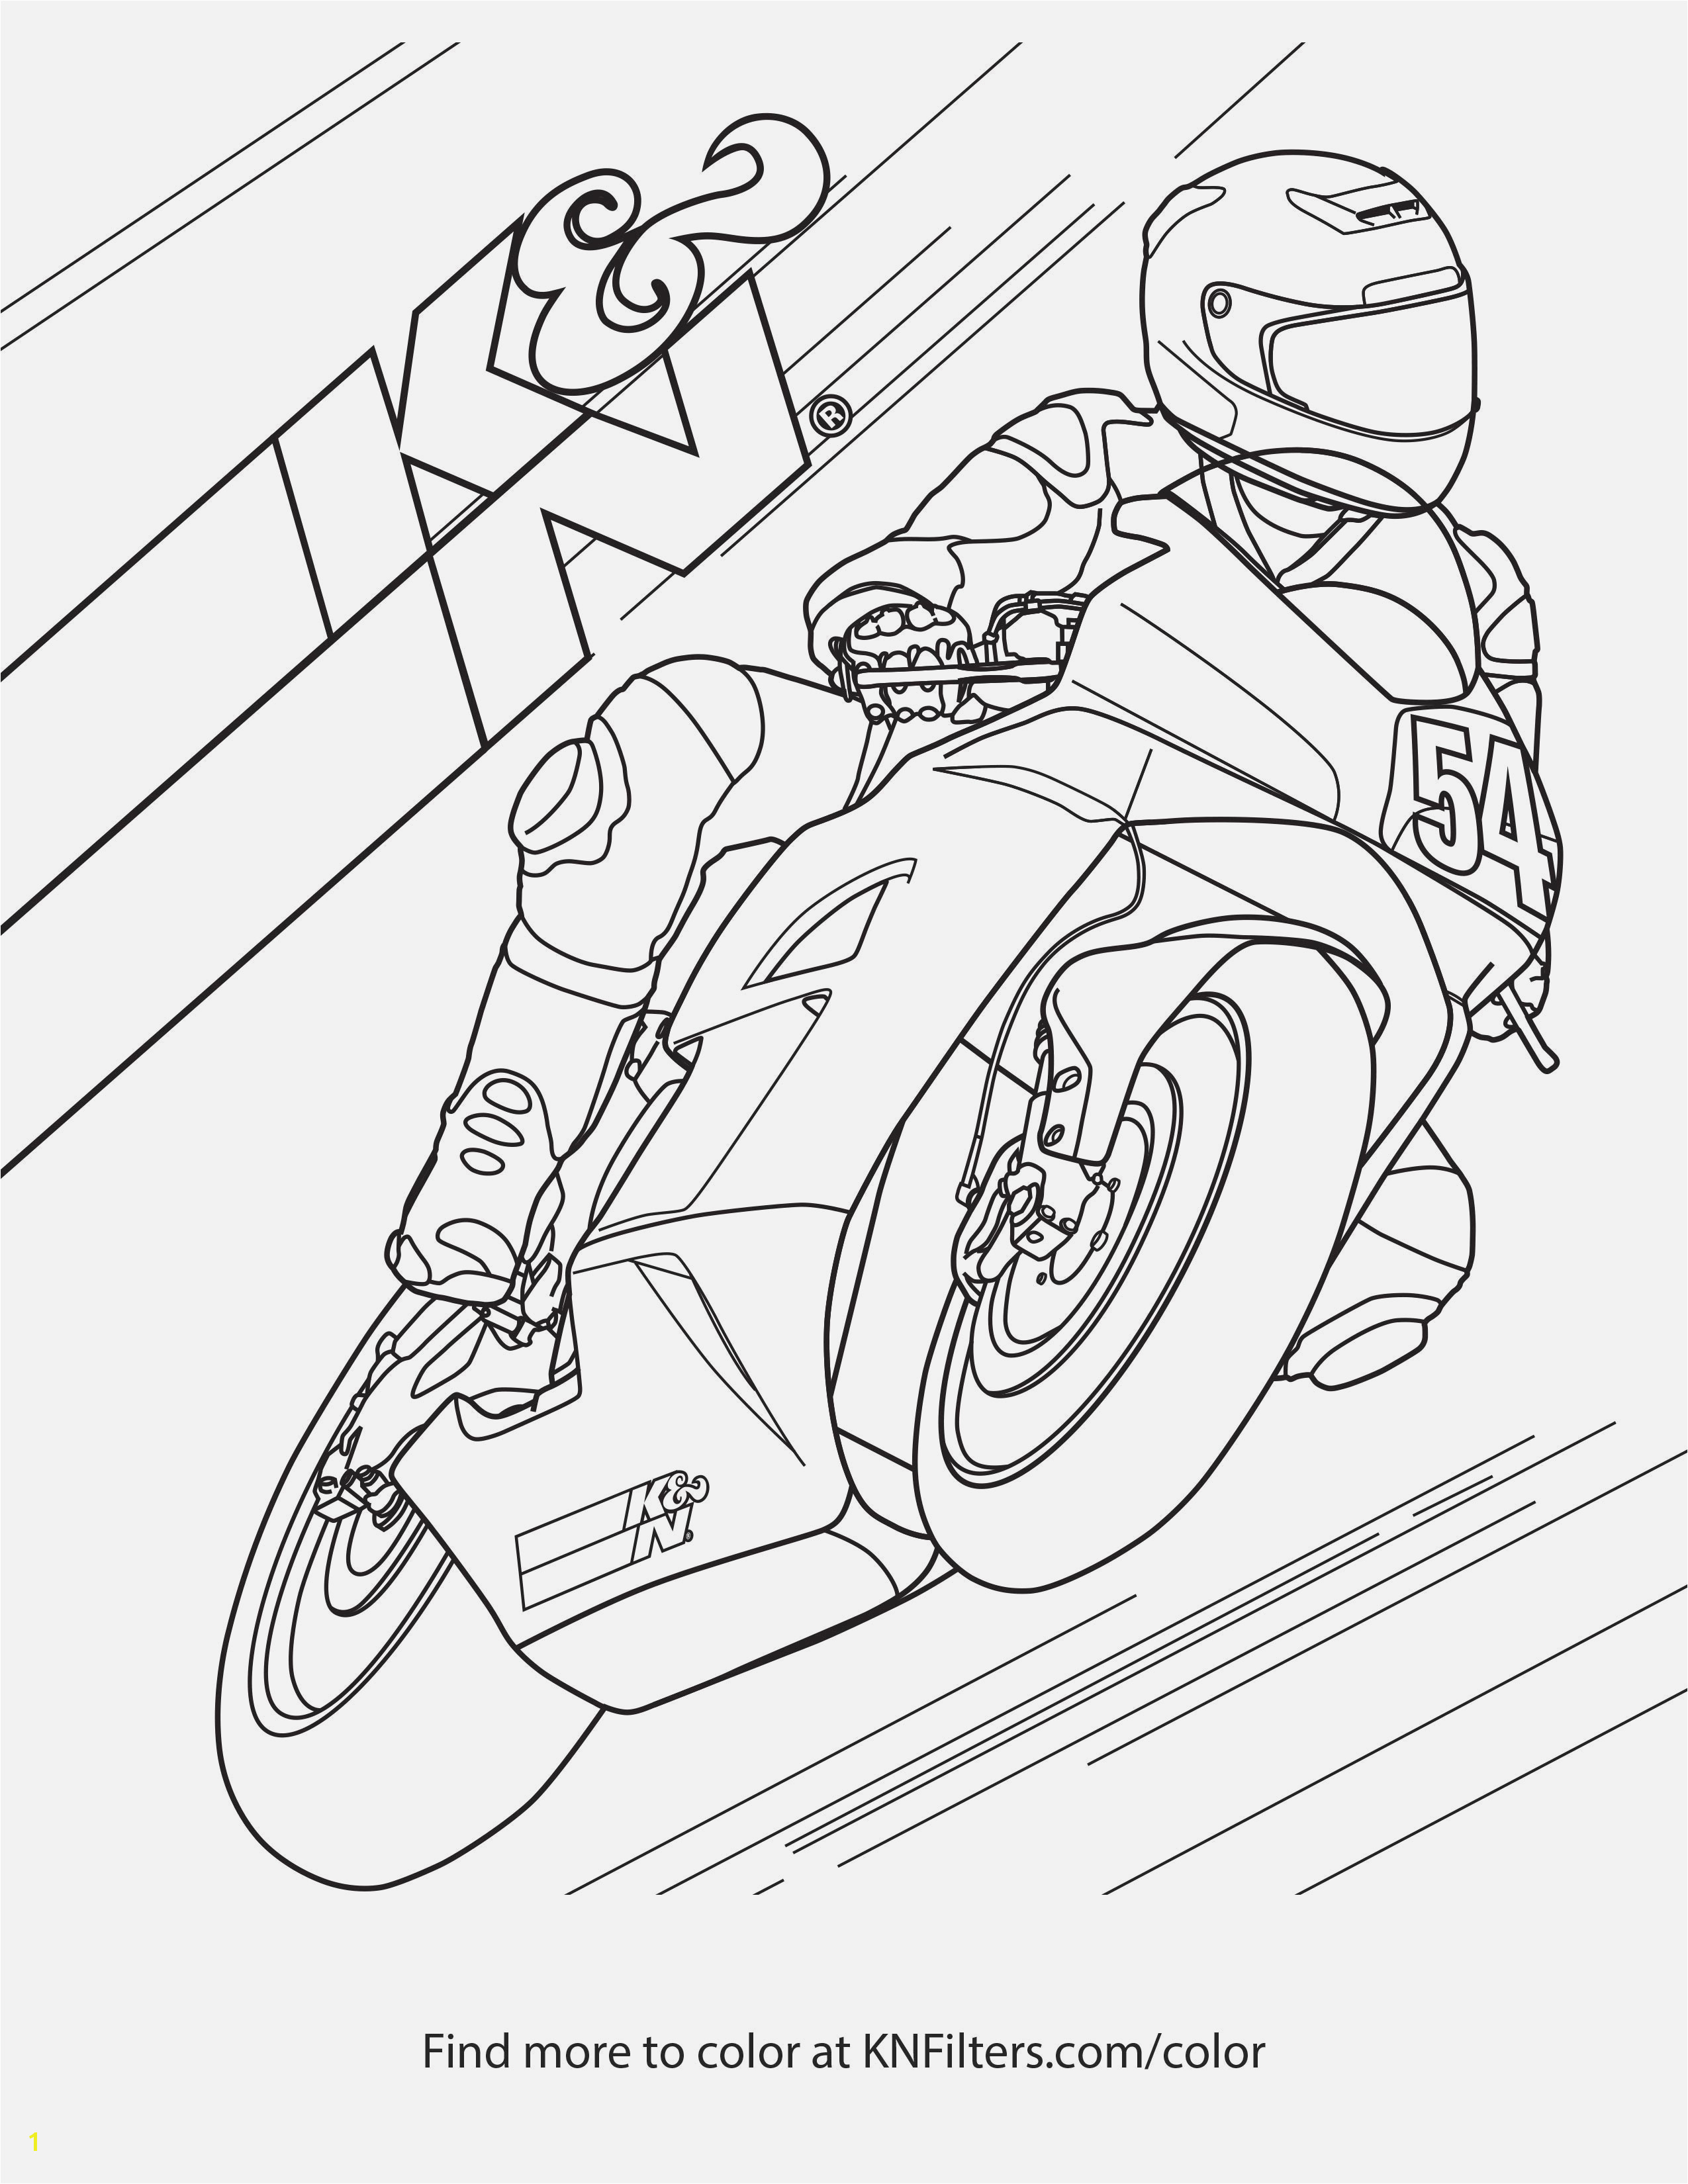 Dirt Bike Coloring Pages Download and Print for Free K&n Printable Coloring Pages for Kids